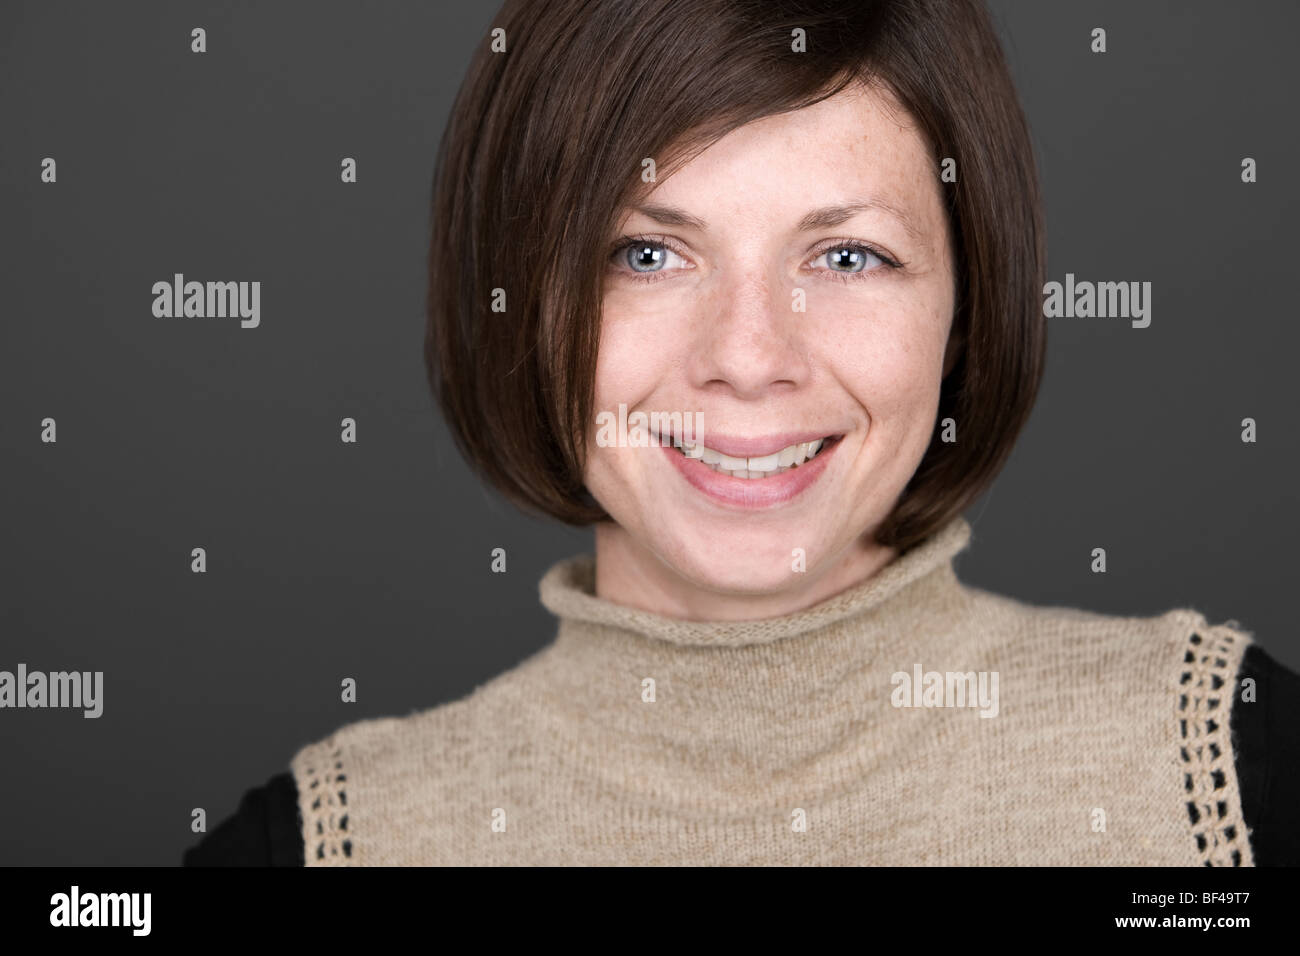 Shot of a Young Attractive Mother - Stock Image